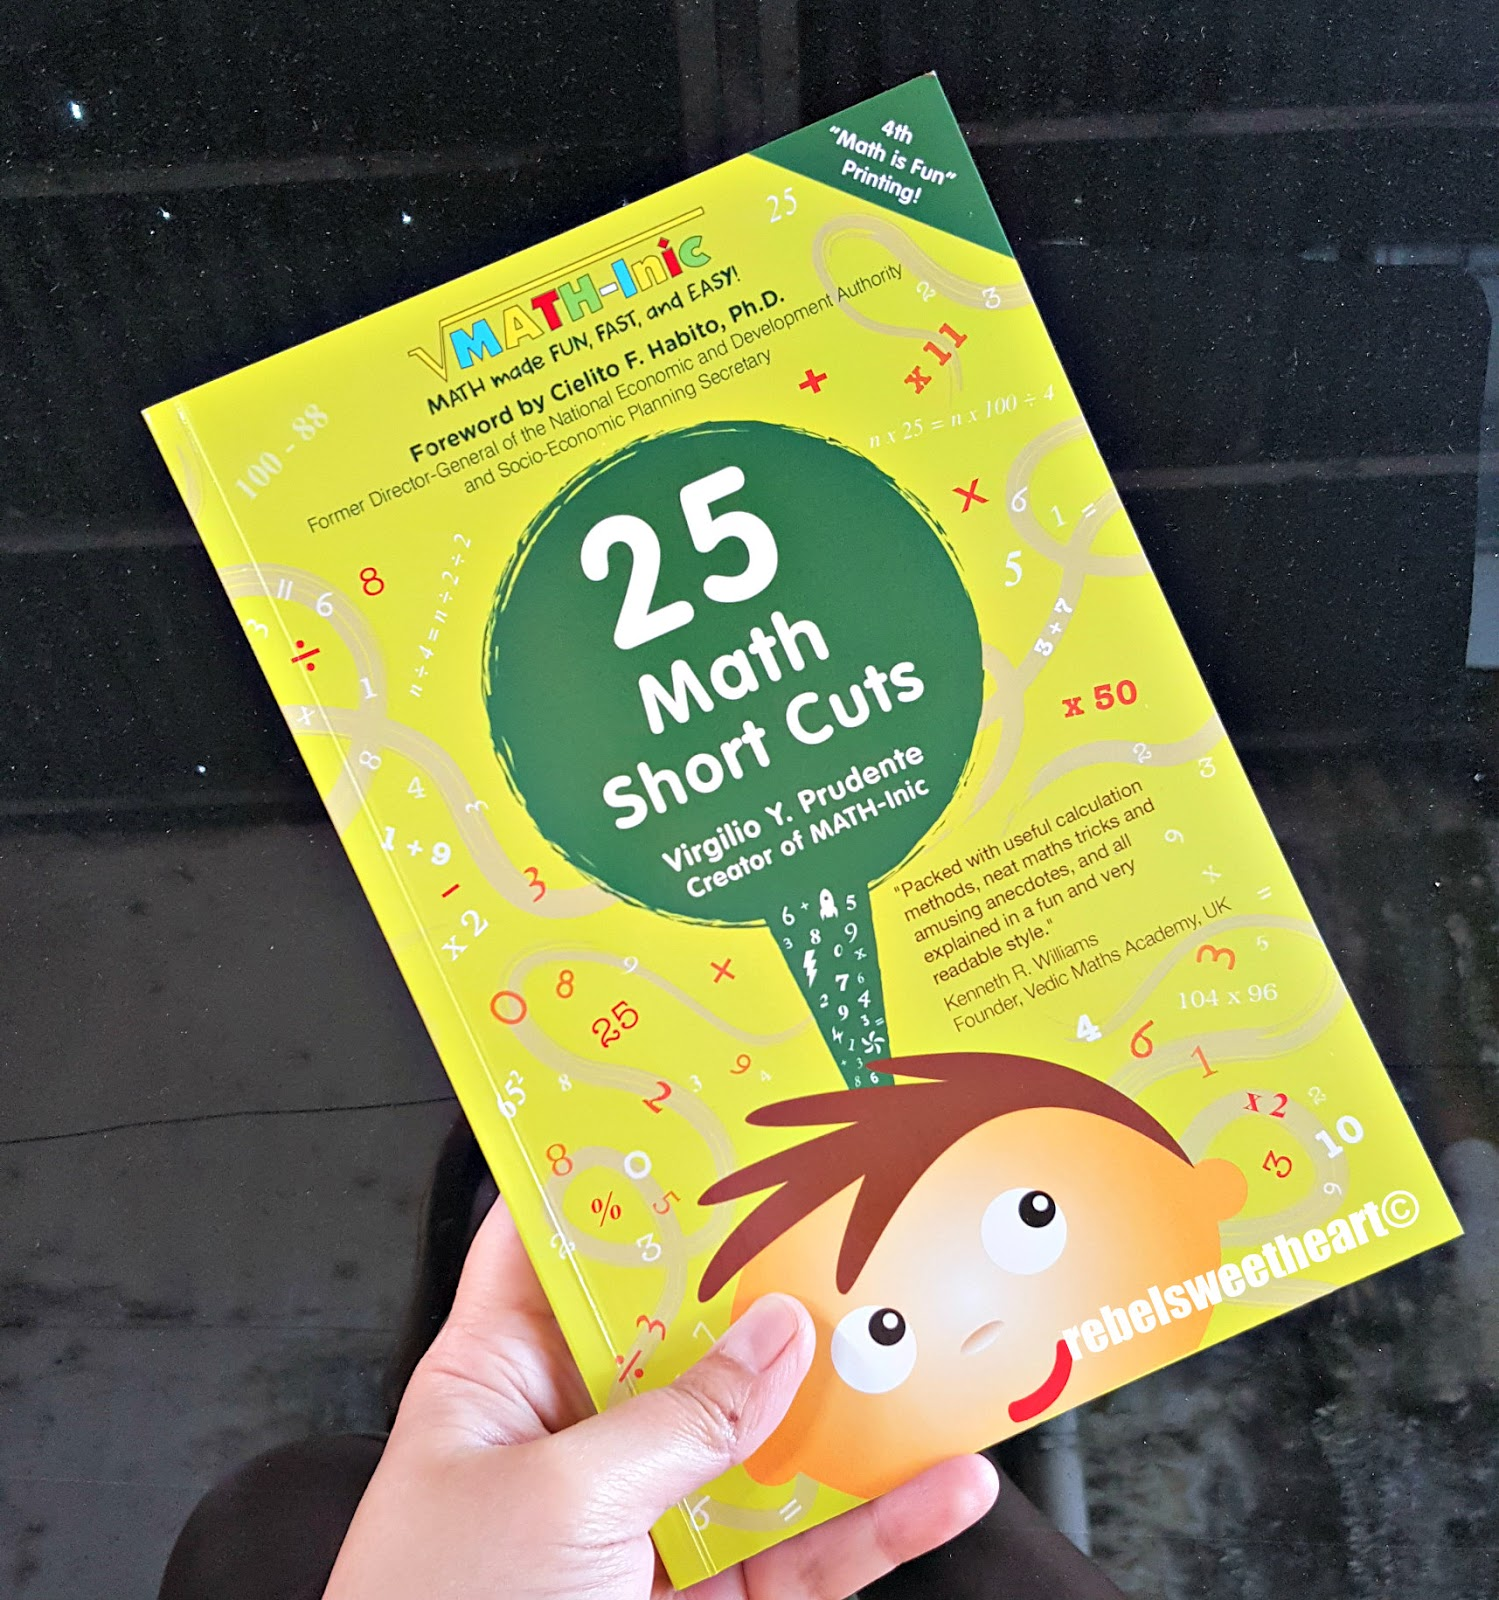 The Rebel Sweetheart : 25 Math Short Cuts | Math Made Easy